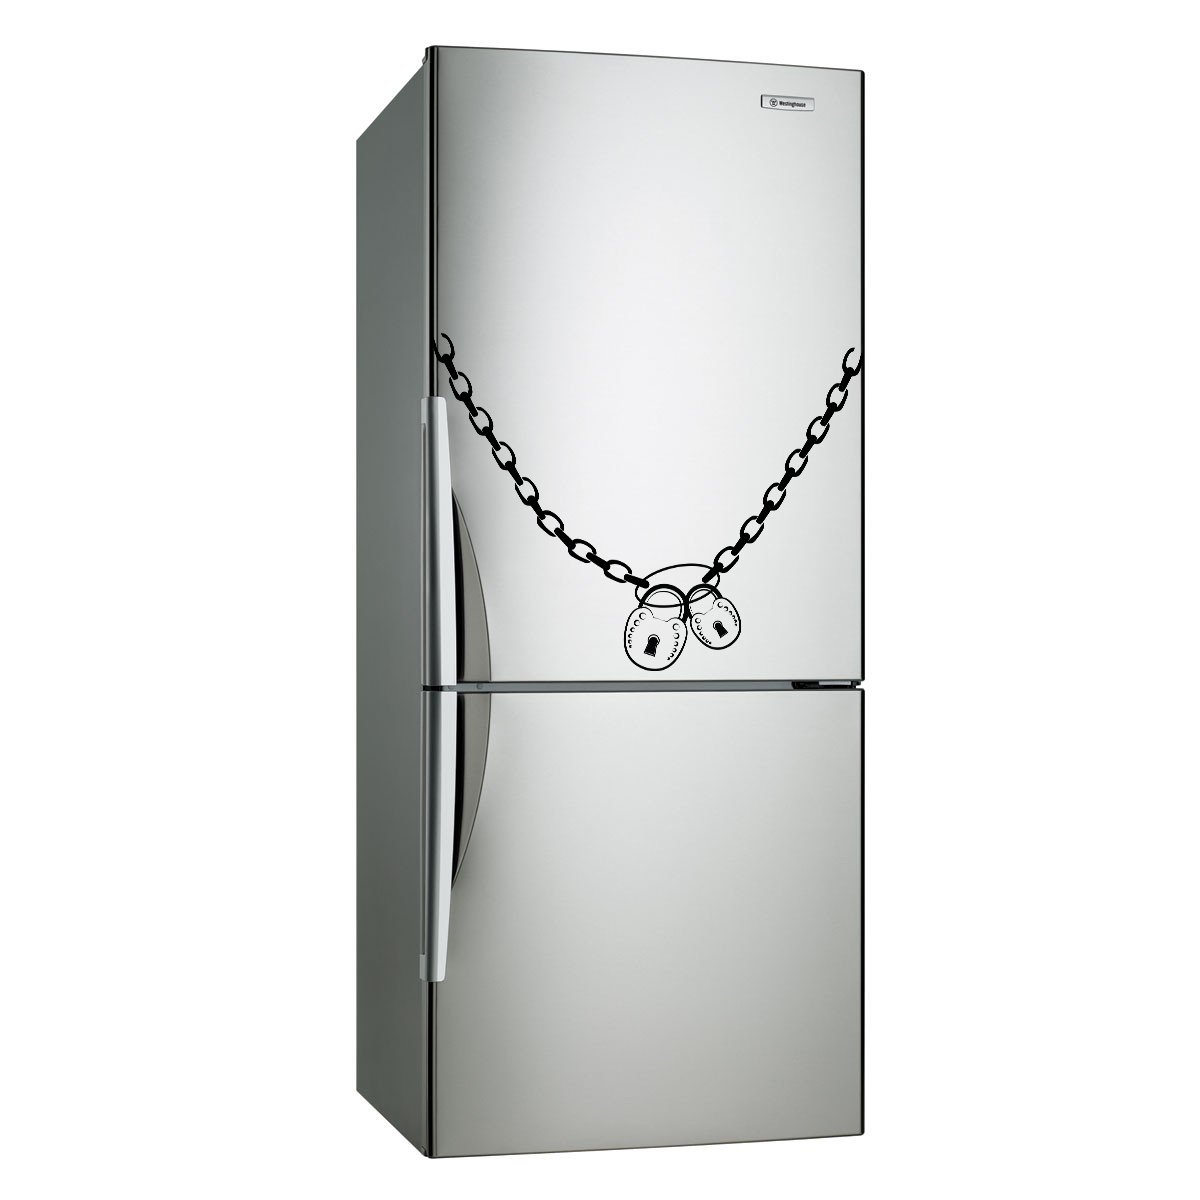 (39''x30'') Vinyl Fridge Decal Lock & Chain Refrigerator Art Decor Home Sticker + Free Decal Gift!